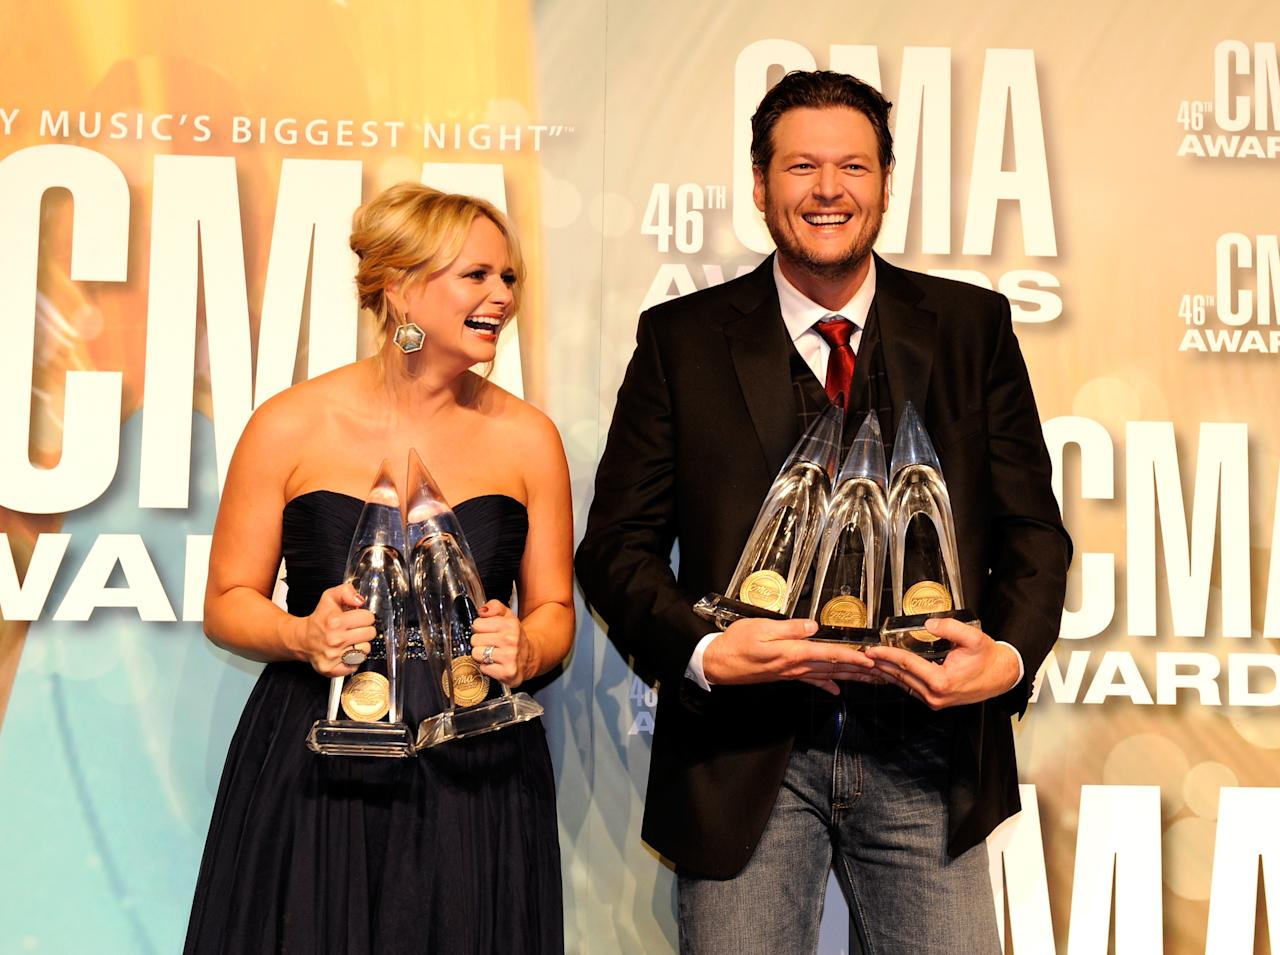 NASHVILLE, TN - NOVEMBER 01:  Miranda Lambert and Blake Shelton pose with awards at the 46th annual CMA Awards at the Bridgestone Arena on November 1, 2012 in Nashville, Tennessee.  (Photo by Erika Goldring/Getty Images)